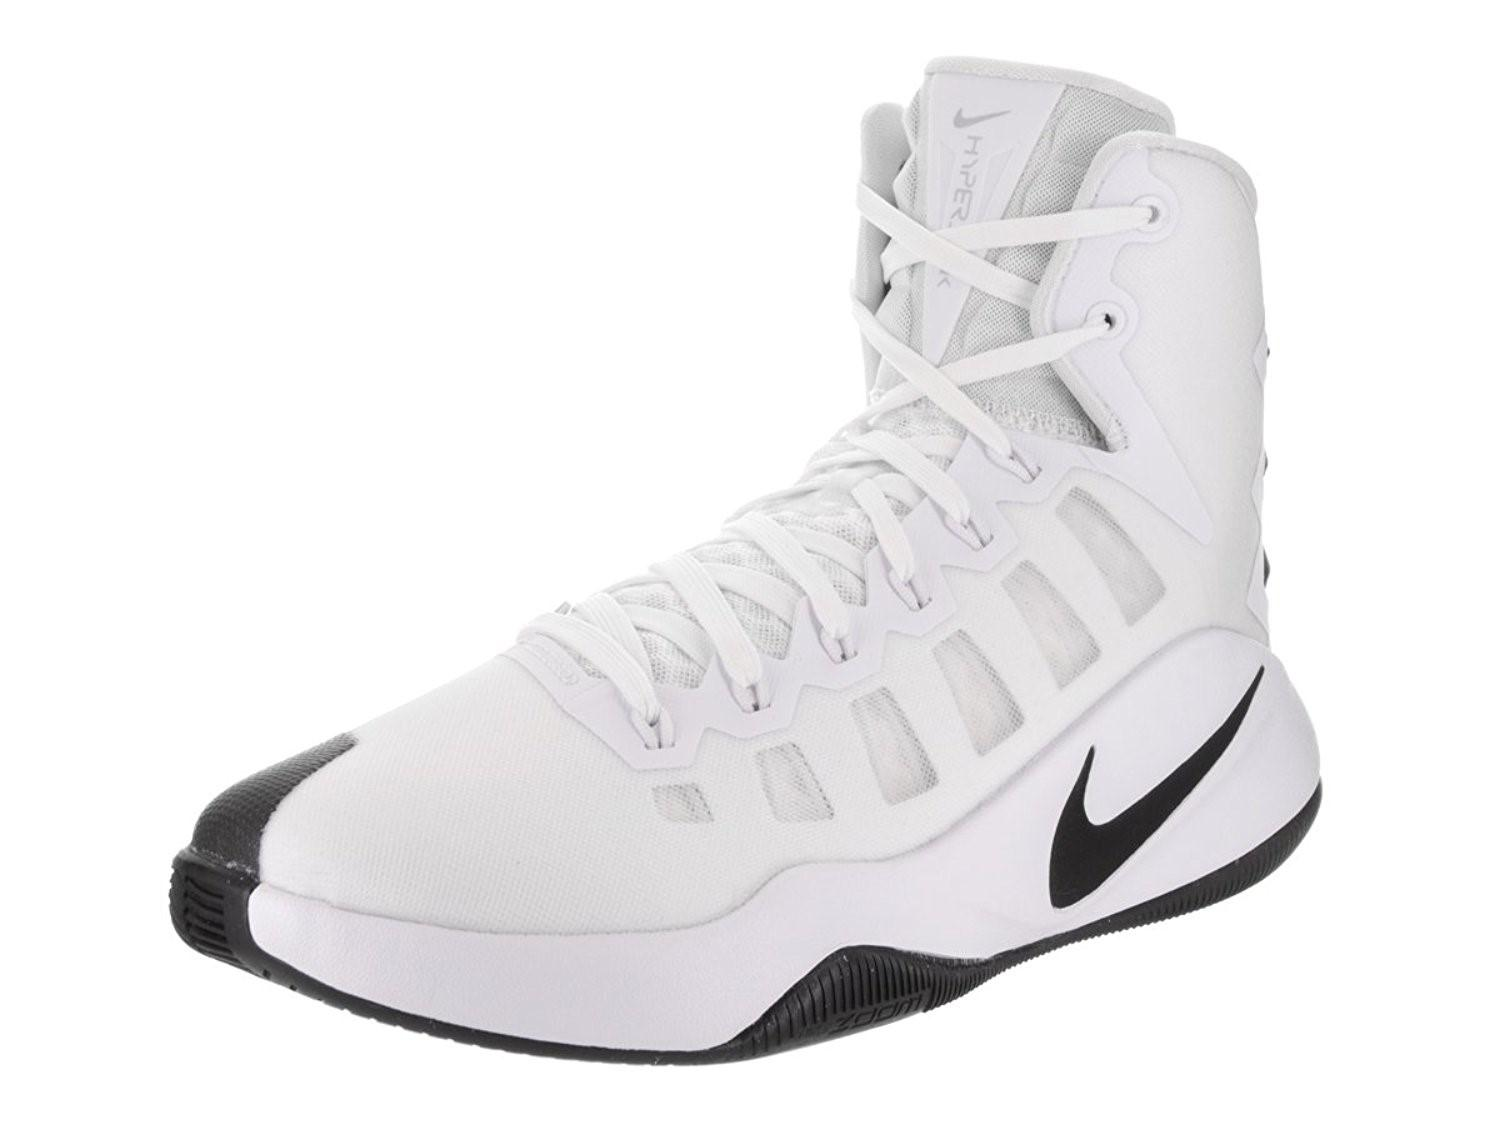 c3a3766d5723 Lyst - Nike Mens Hyperdunk 2016 Tb Basketball Shoes (9.5) in White ...